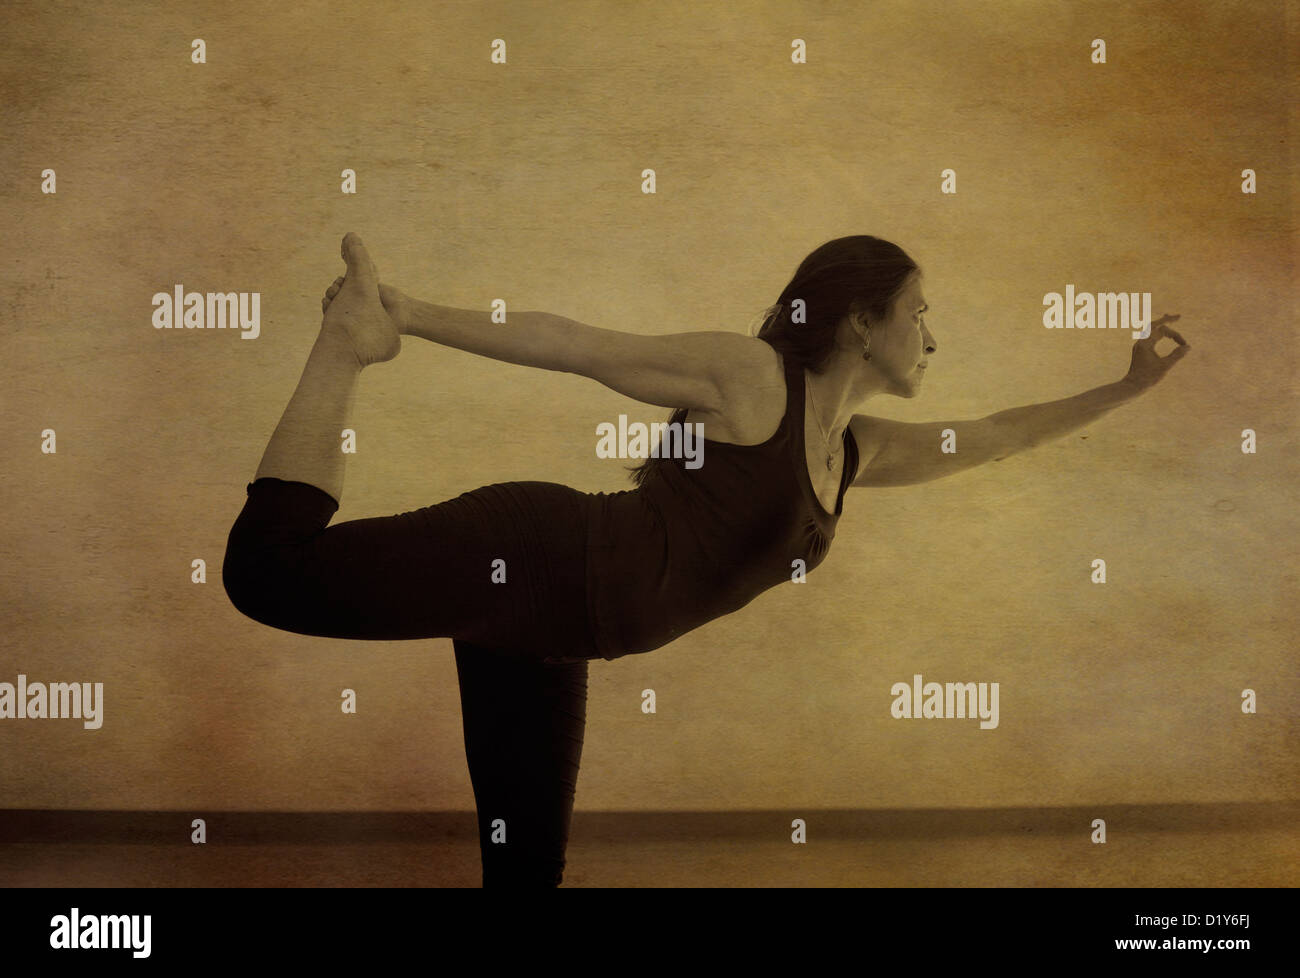 Woman in yoga pose indoors. Photo based illustration. - Stock Image